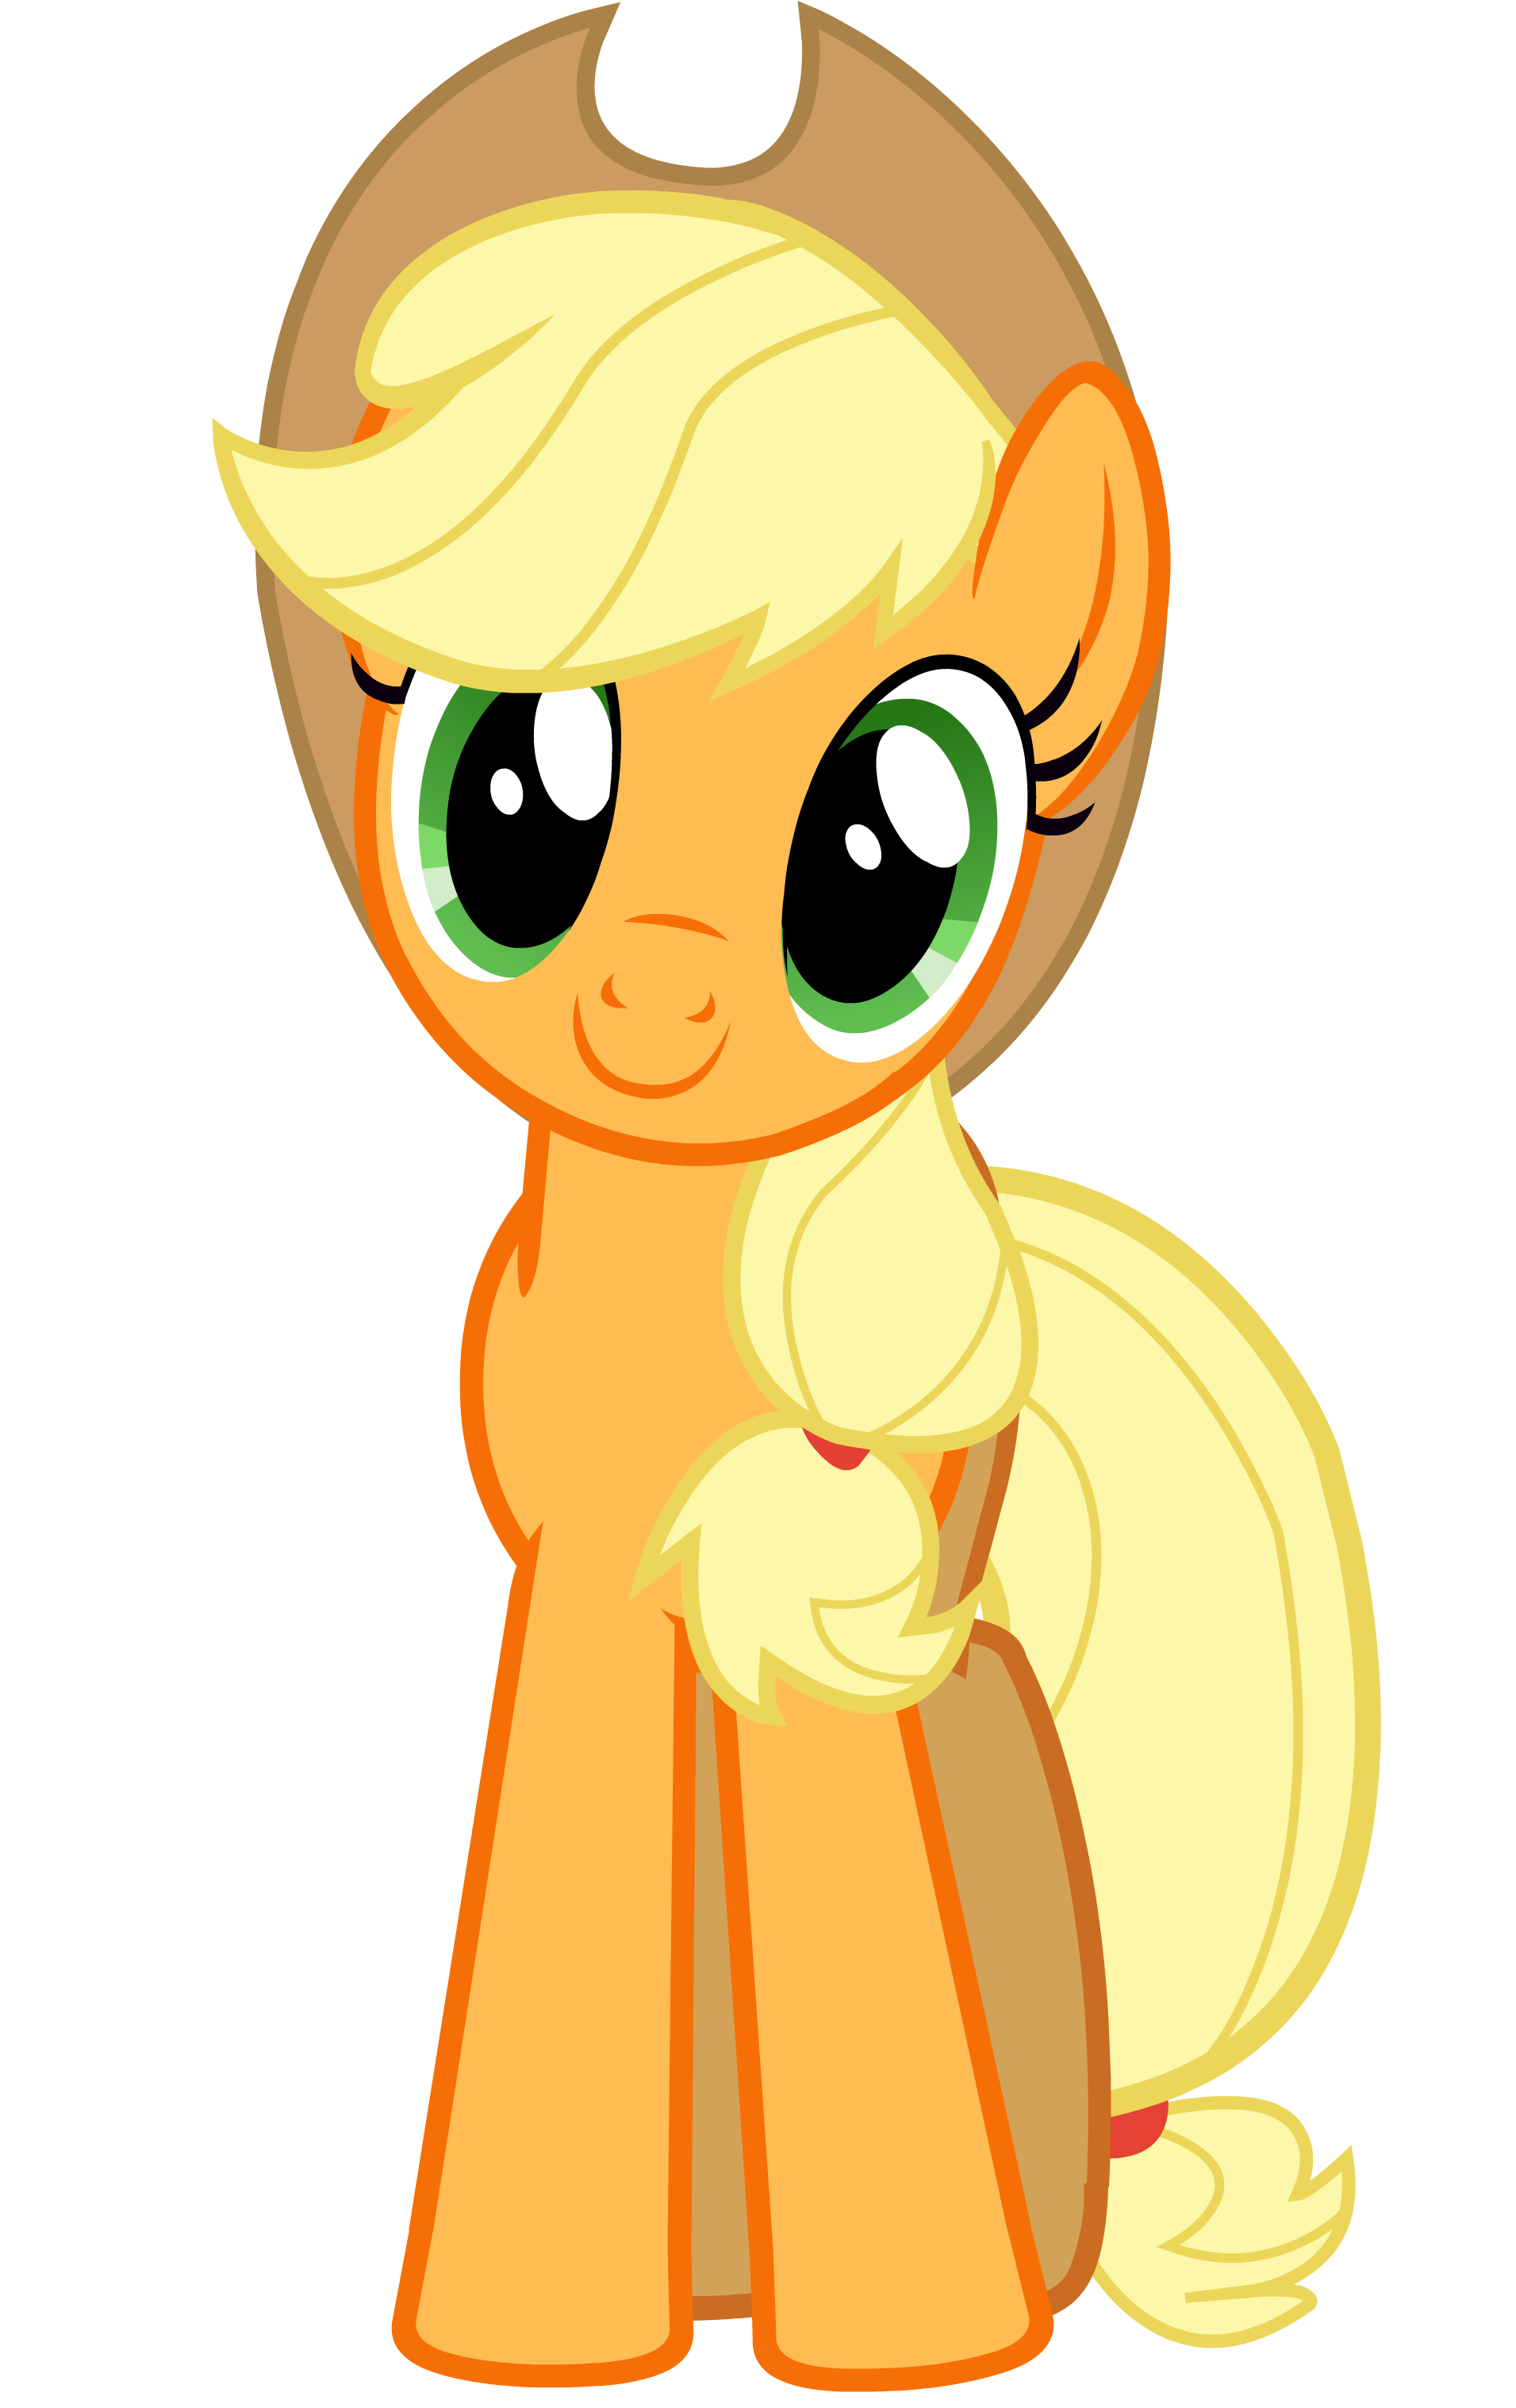 MLP - Happy Applejack | My Little Pony :P | Pinterest ...